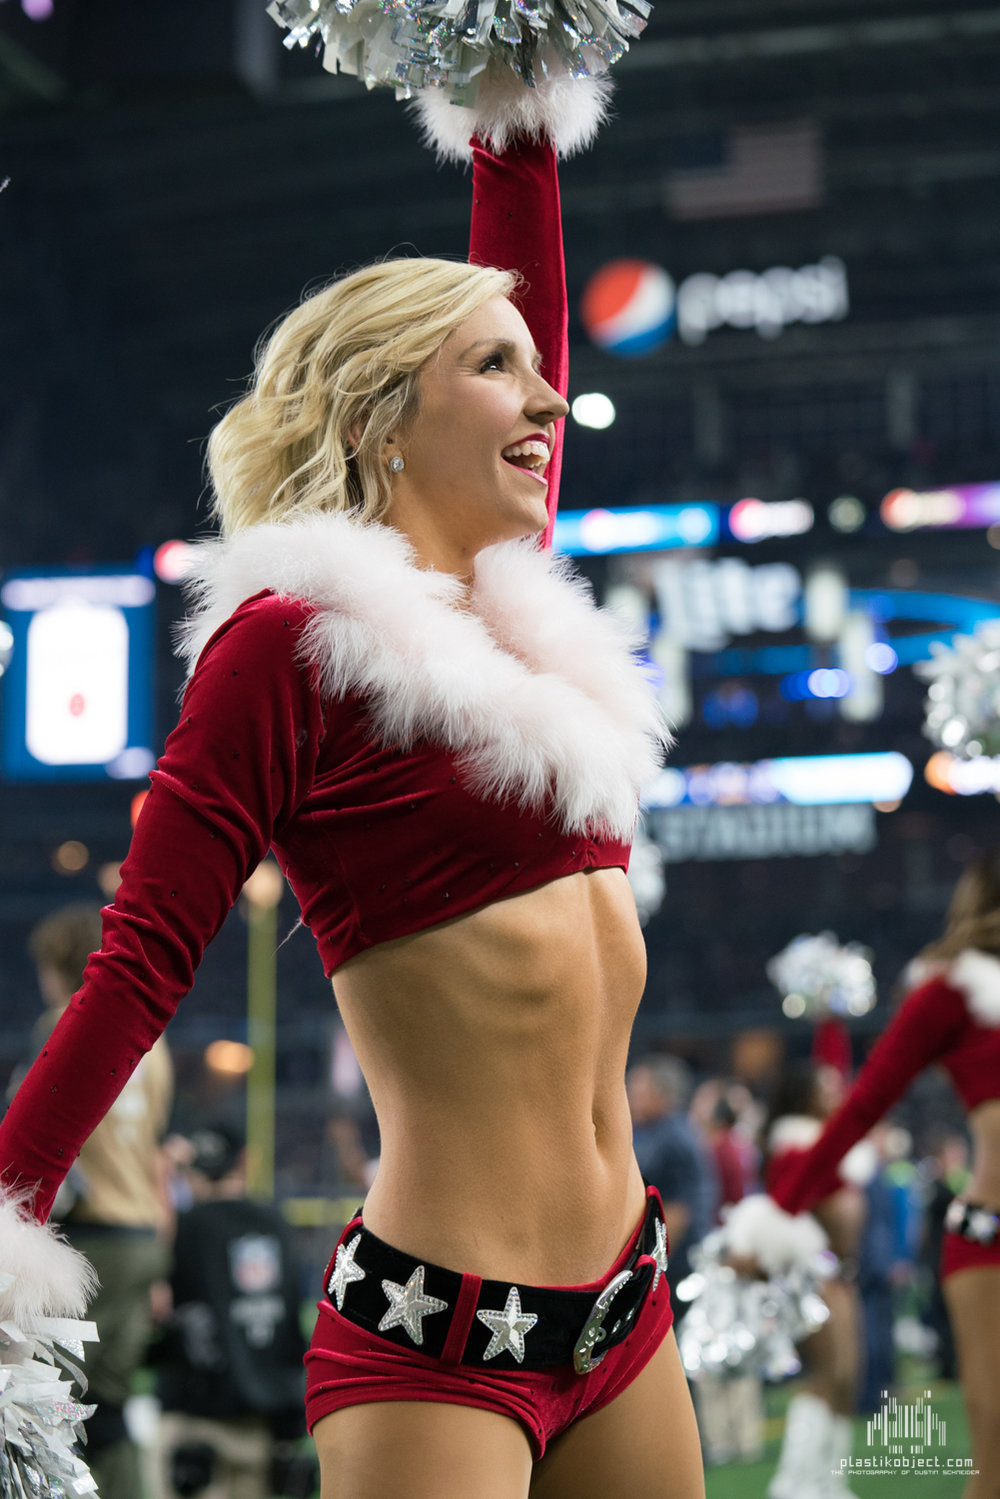 20171224_DalvsSea_cheer_Amy-5.jpg